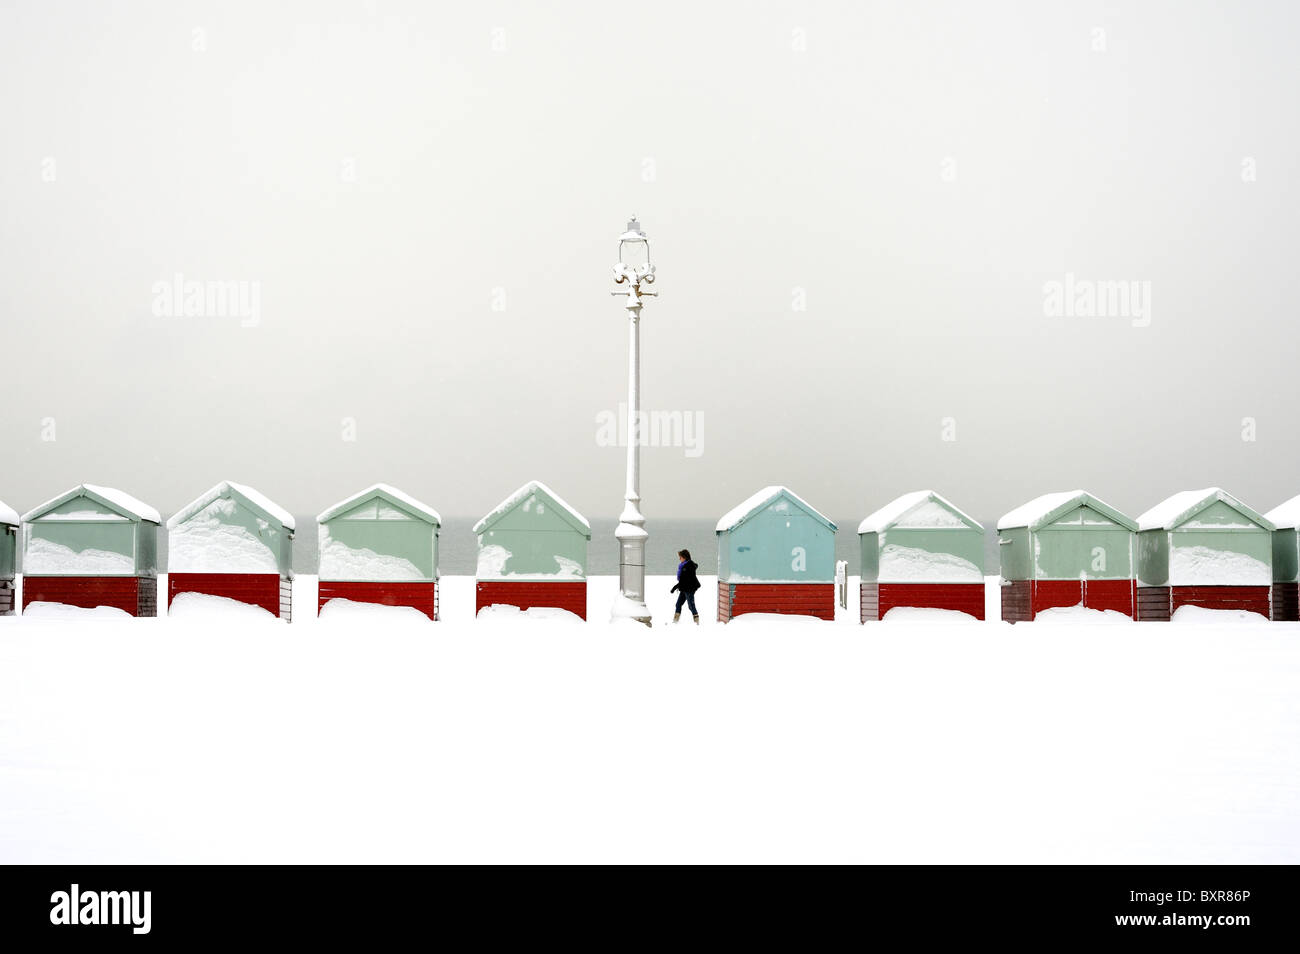 A walker passes a row of beach huts covered in snow - Stock Image